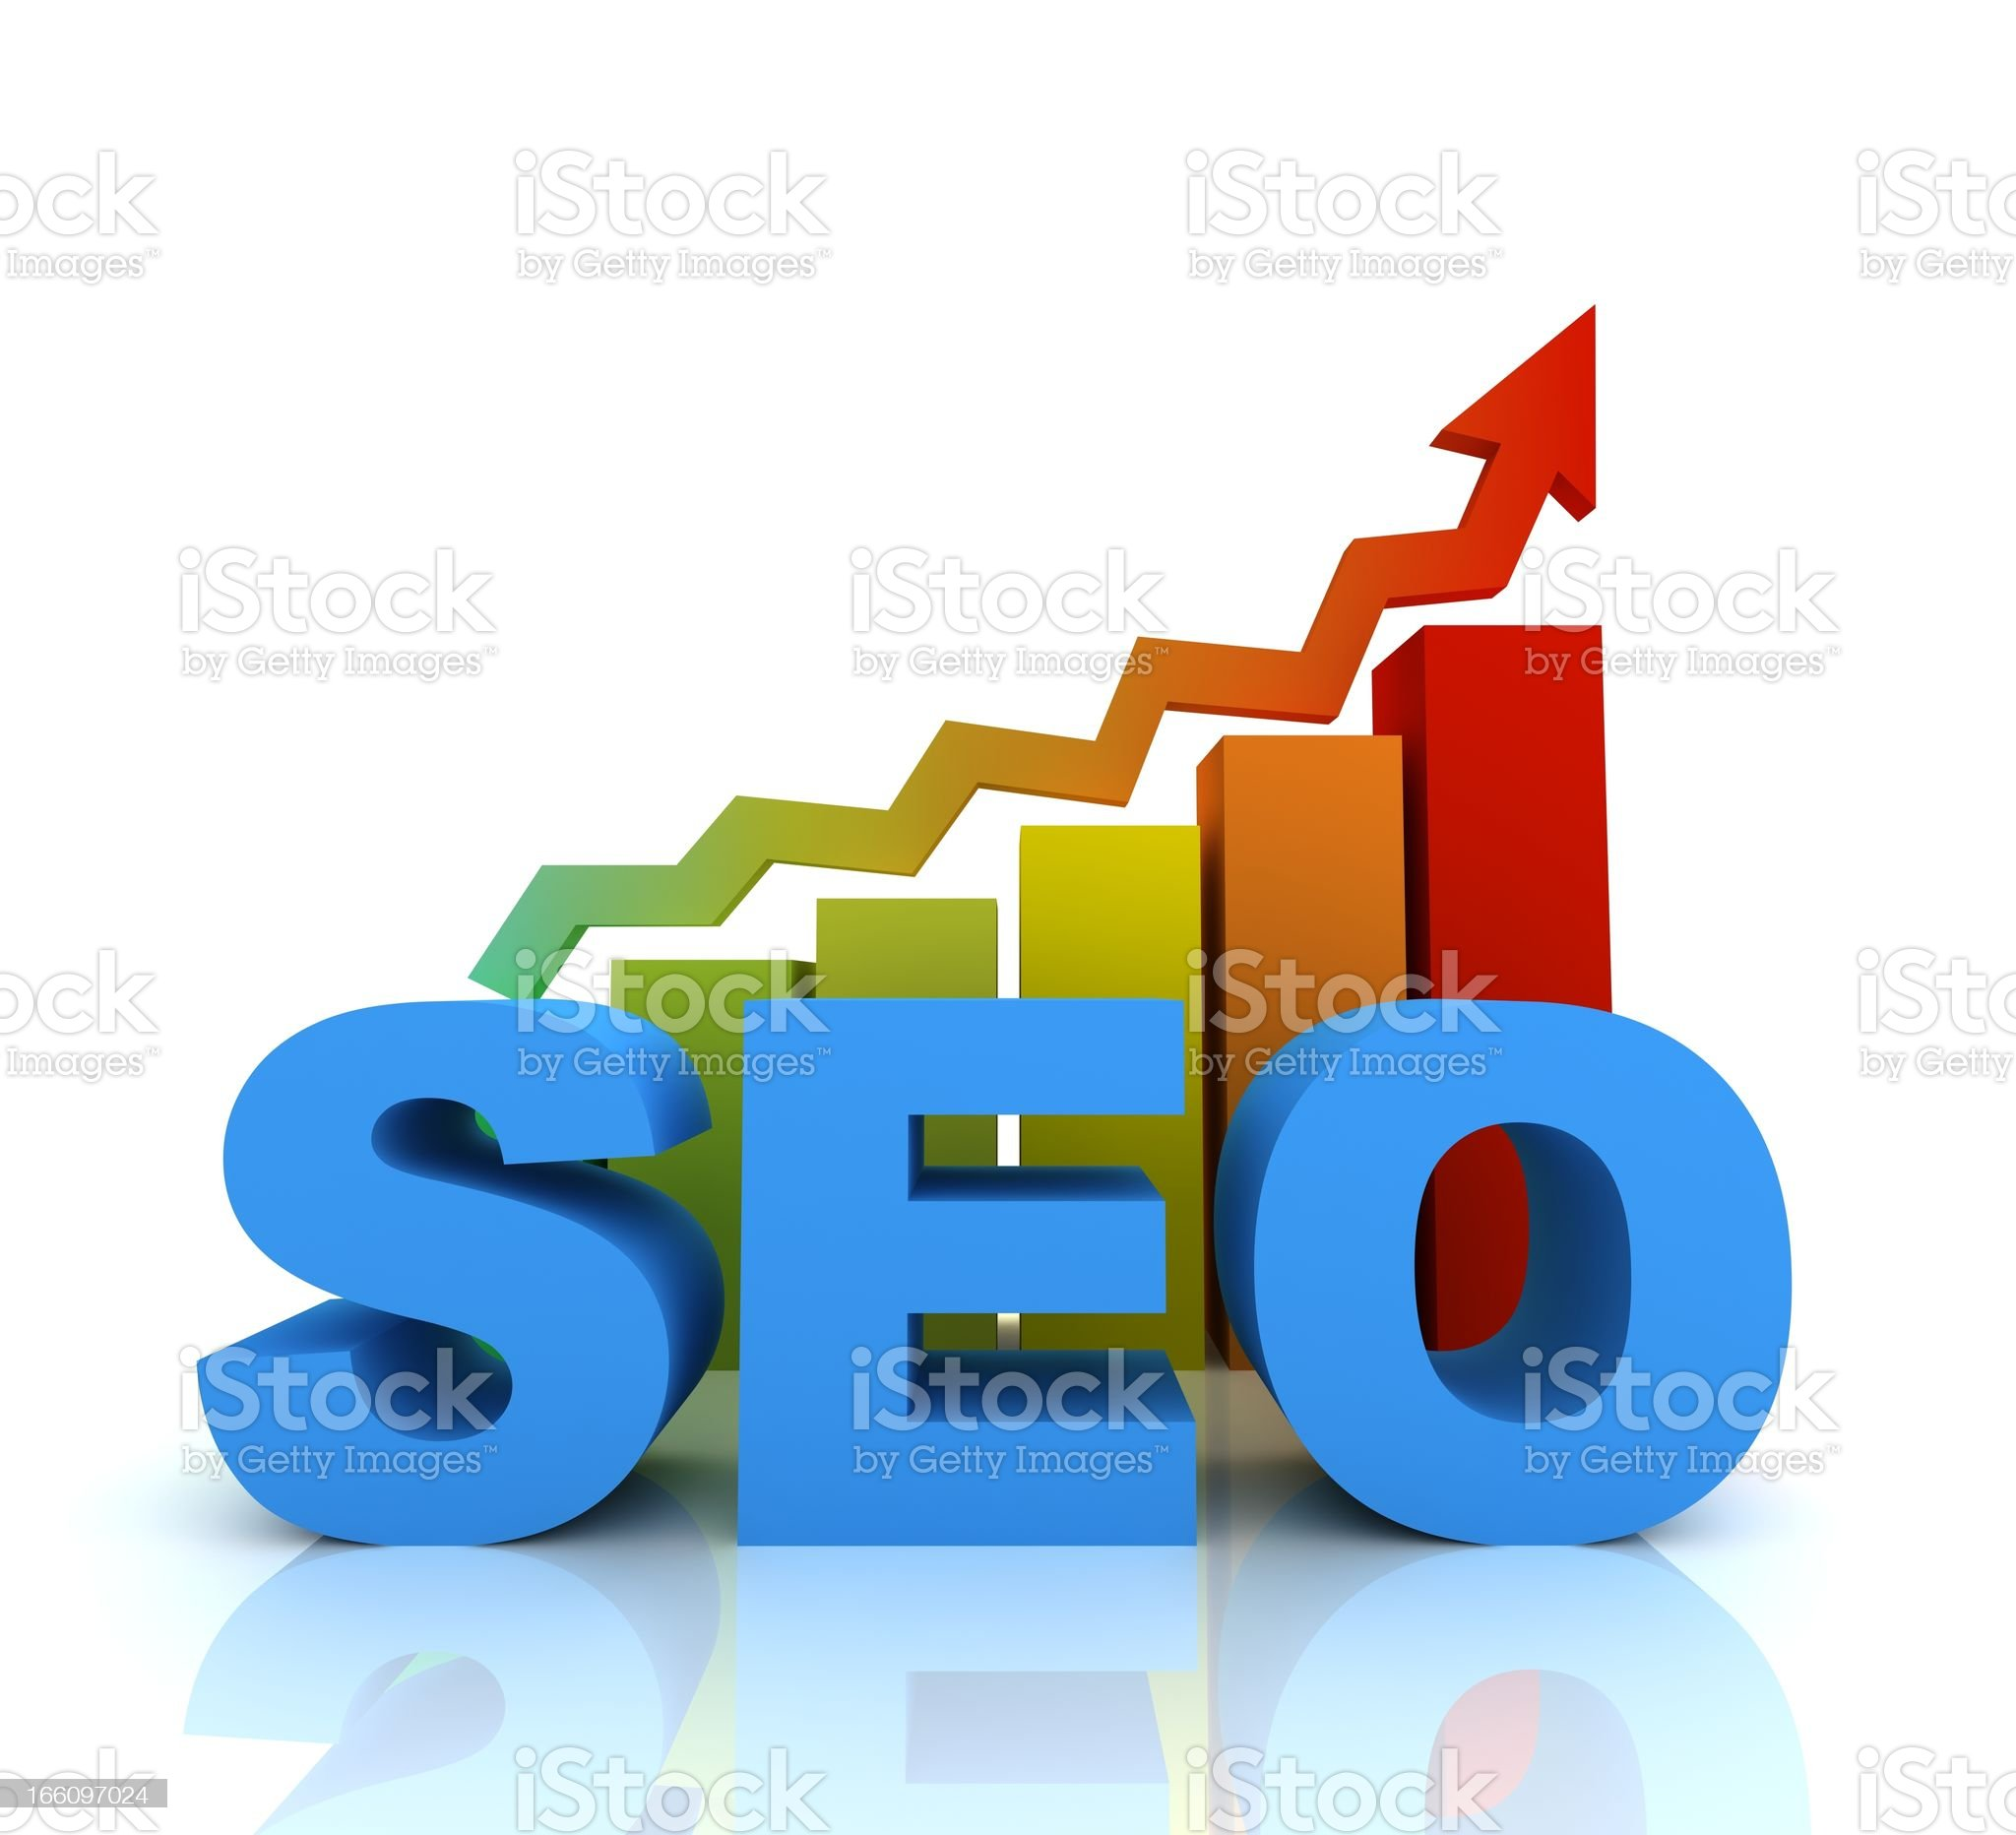 SEO - Search Engine Optimization royalty-free stock photo